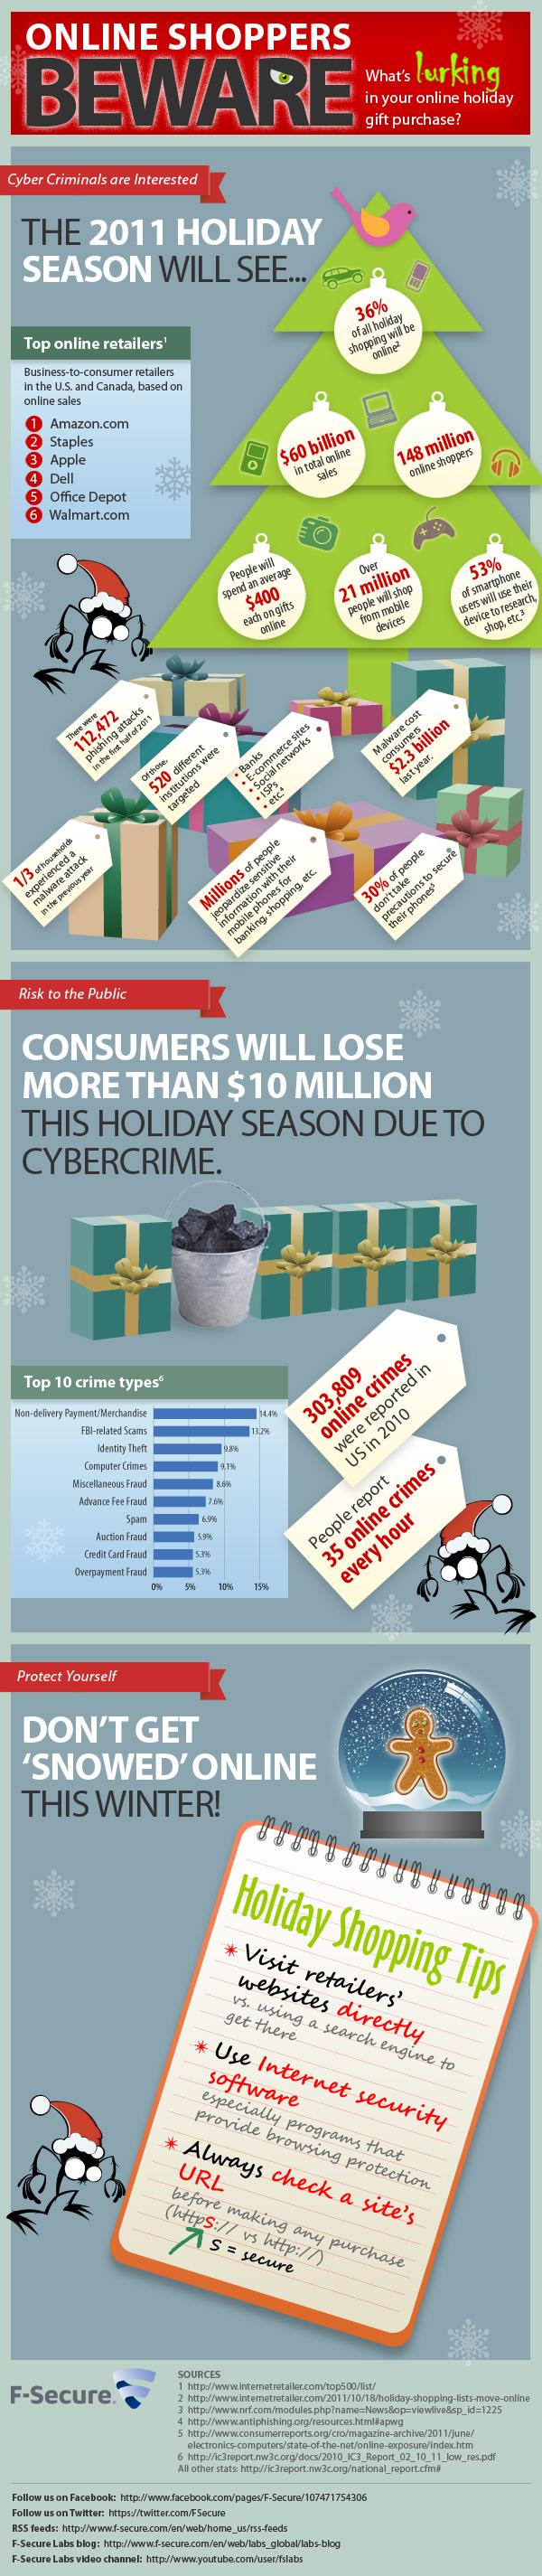 f-secure_infog_holiday_final2